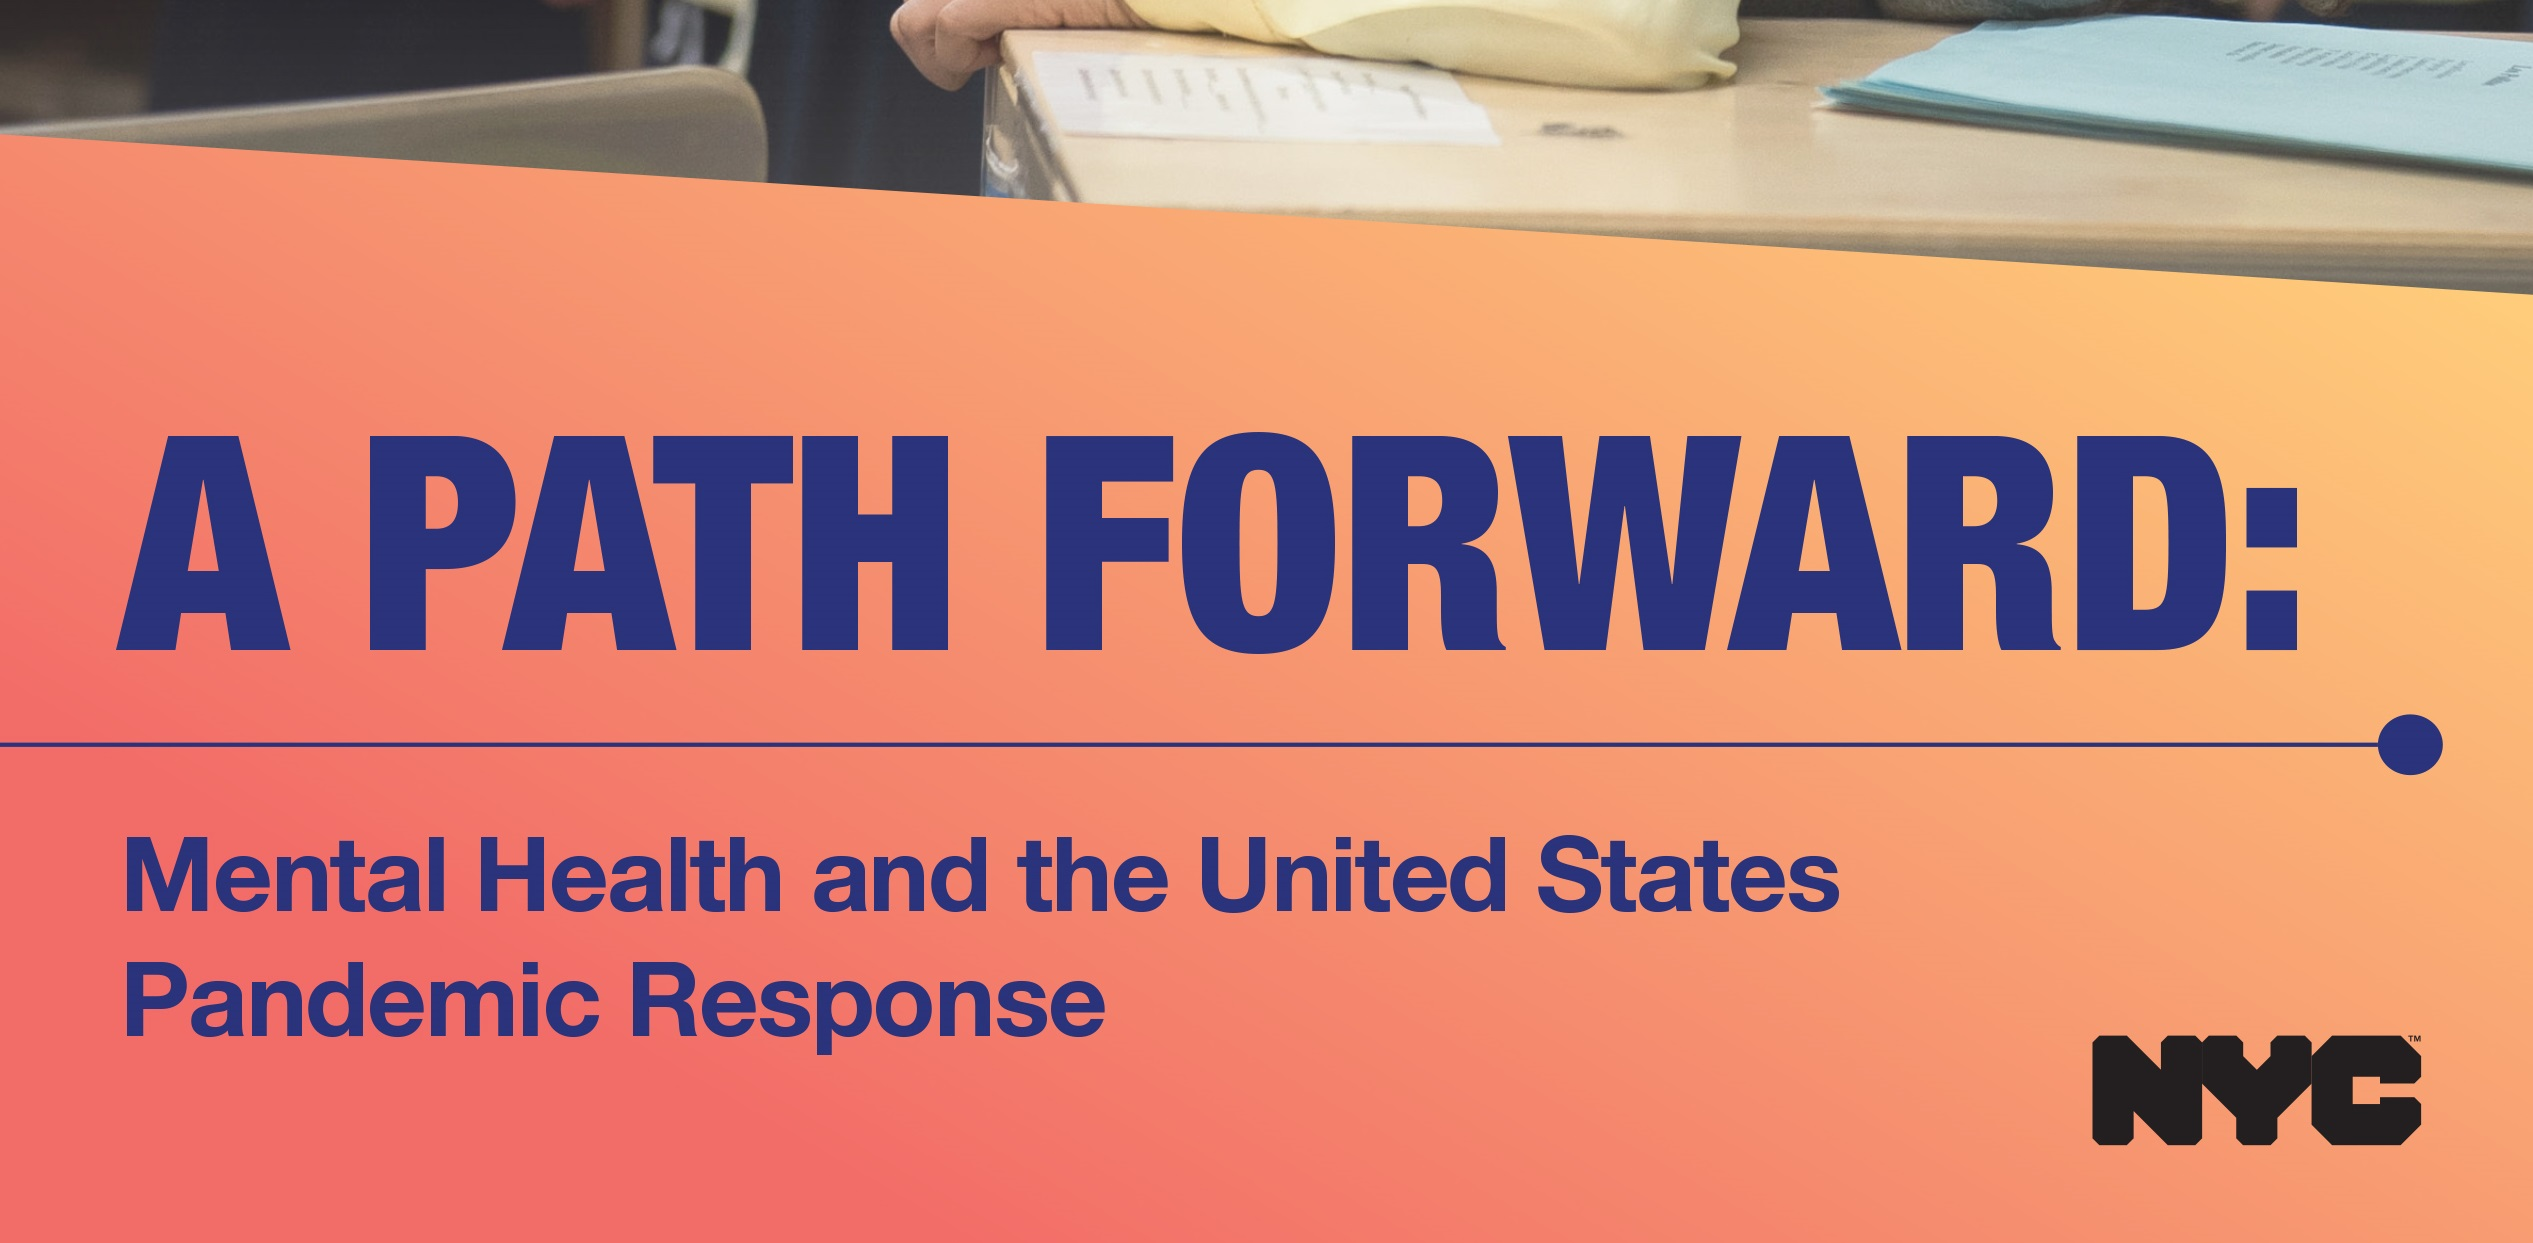 A Path Forward: Mental Health and the United States Pandemic Response